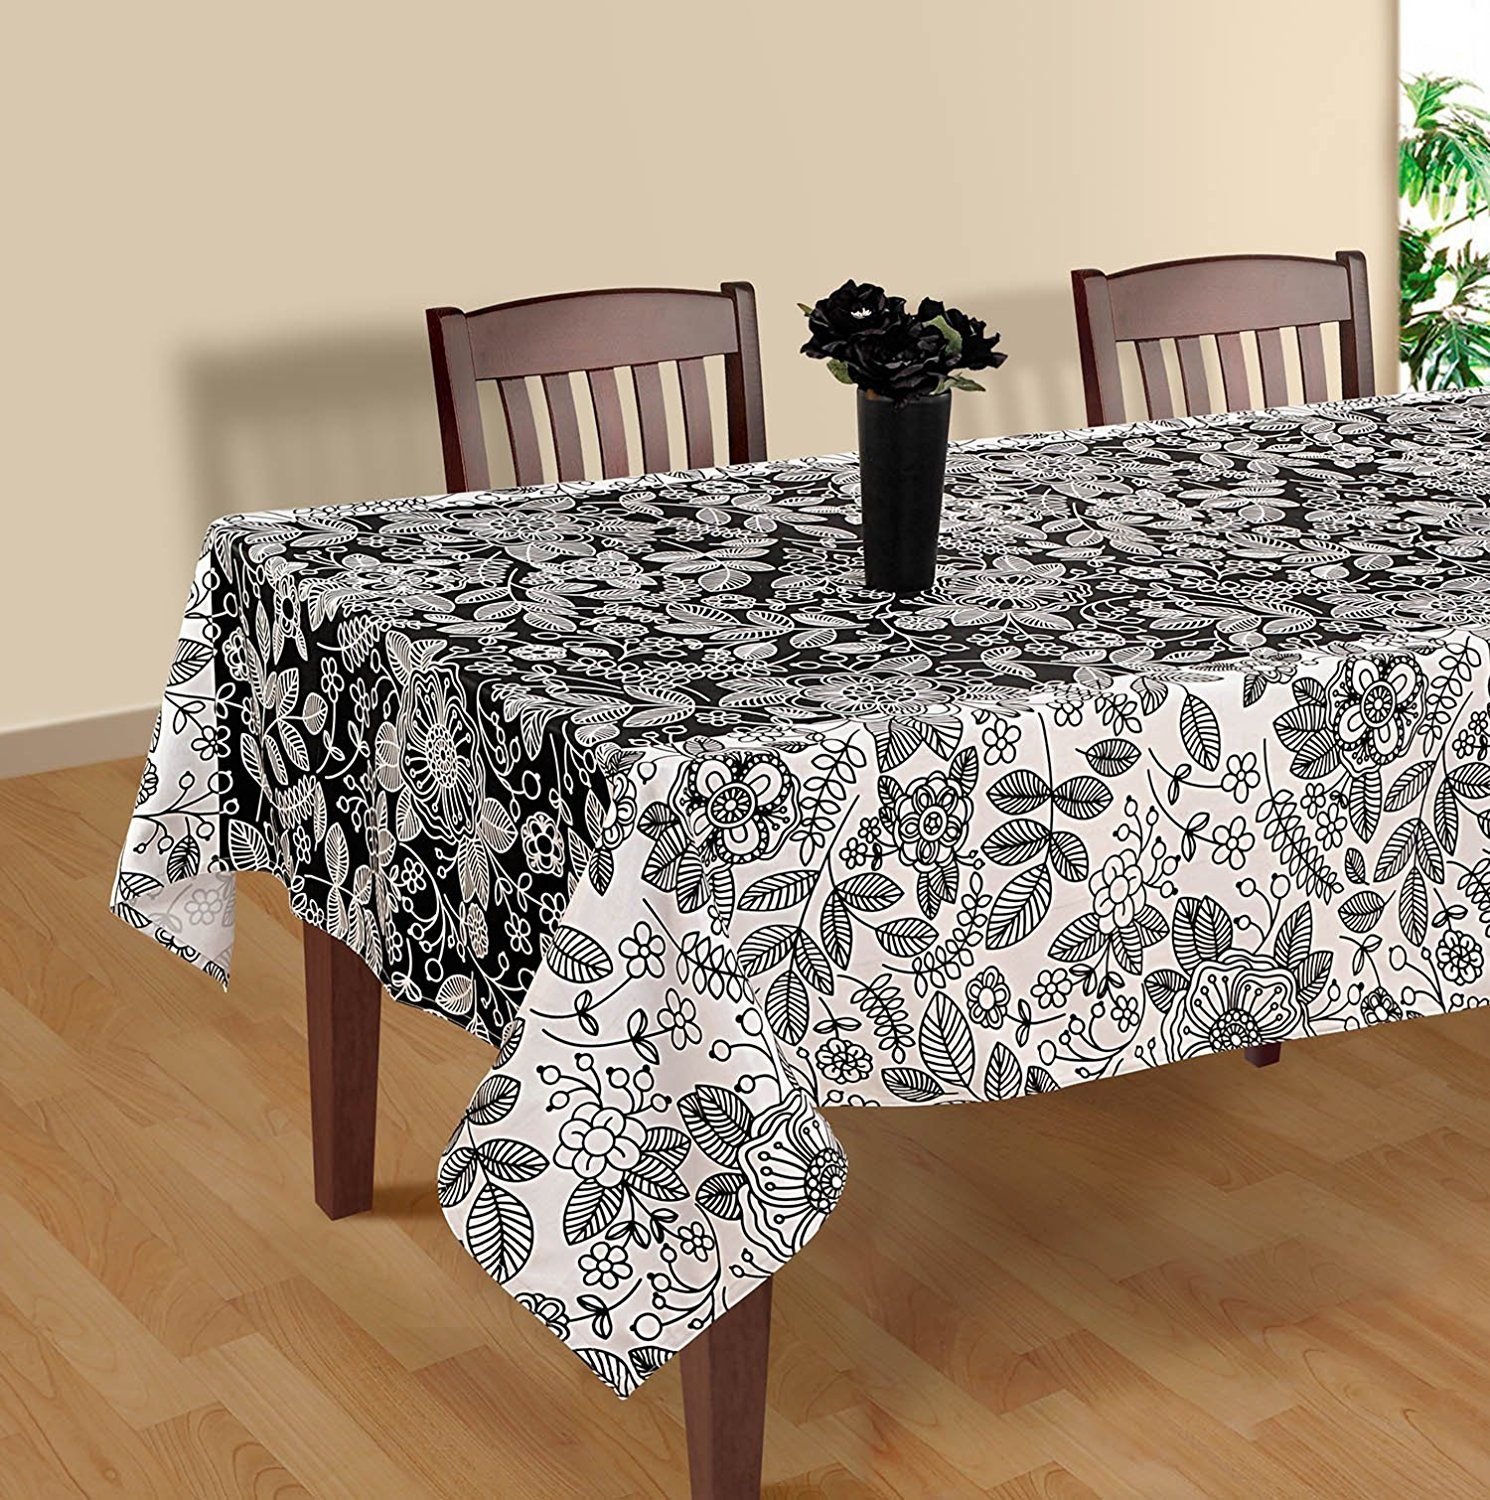 Black And White Modern Floral Rectangular Tablecloth   60 X 120 Inches  Cotton Table Cloth Cover For Tables    You Can Get More Details Here :  Christmas ...